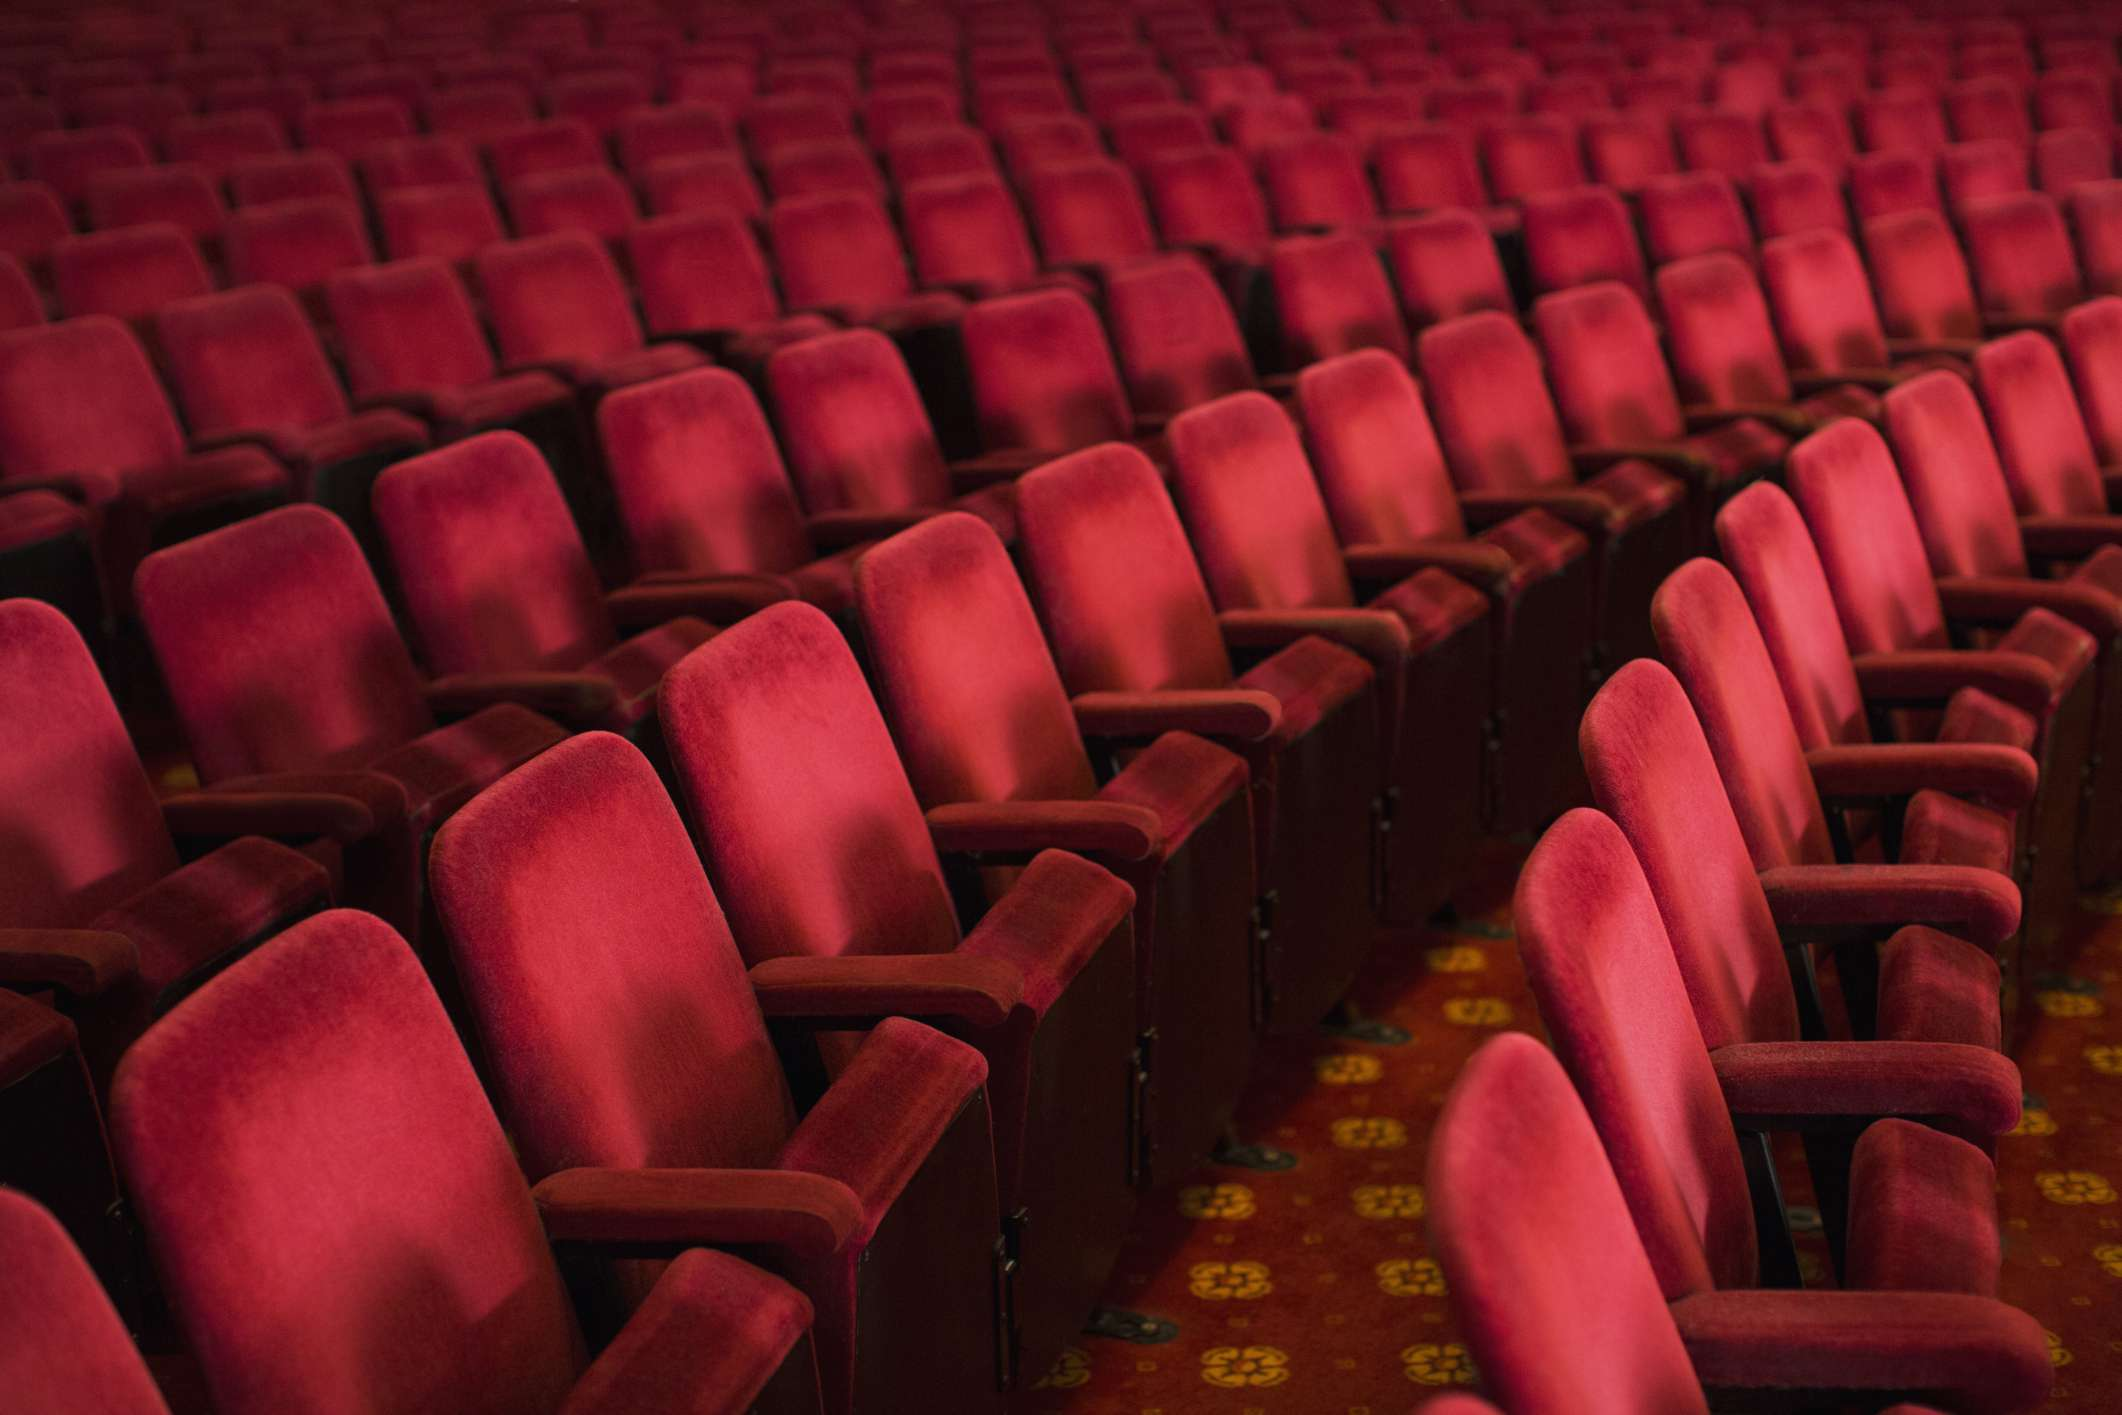 Rows of empty seats at a conference center